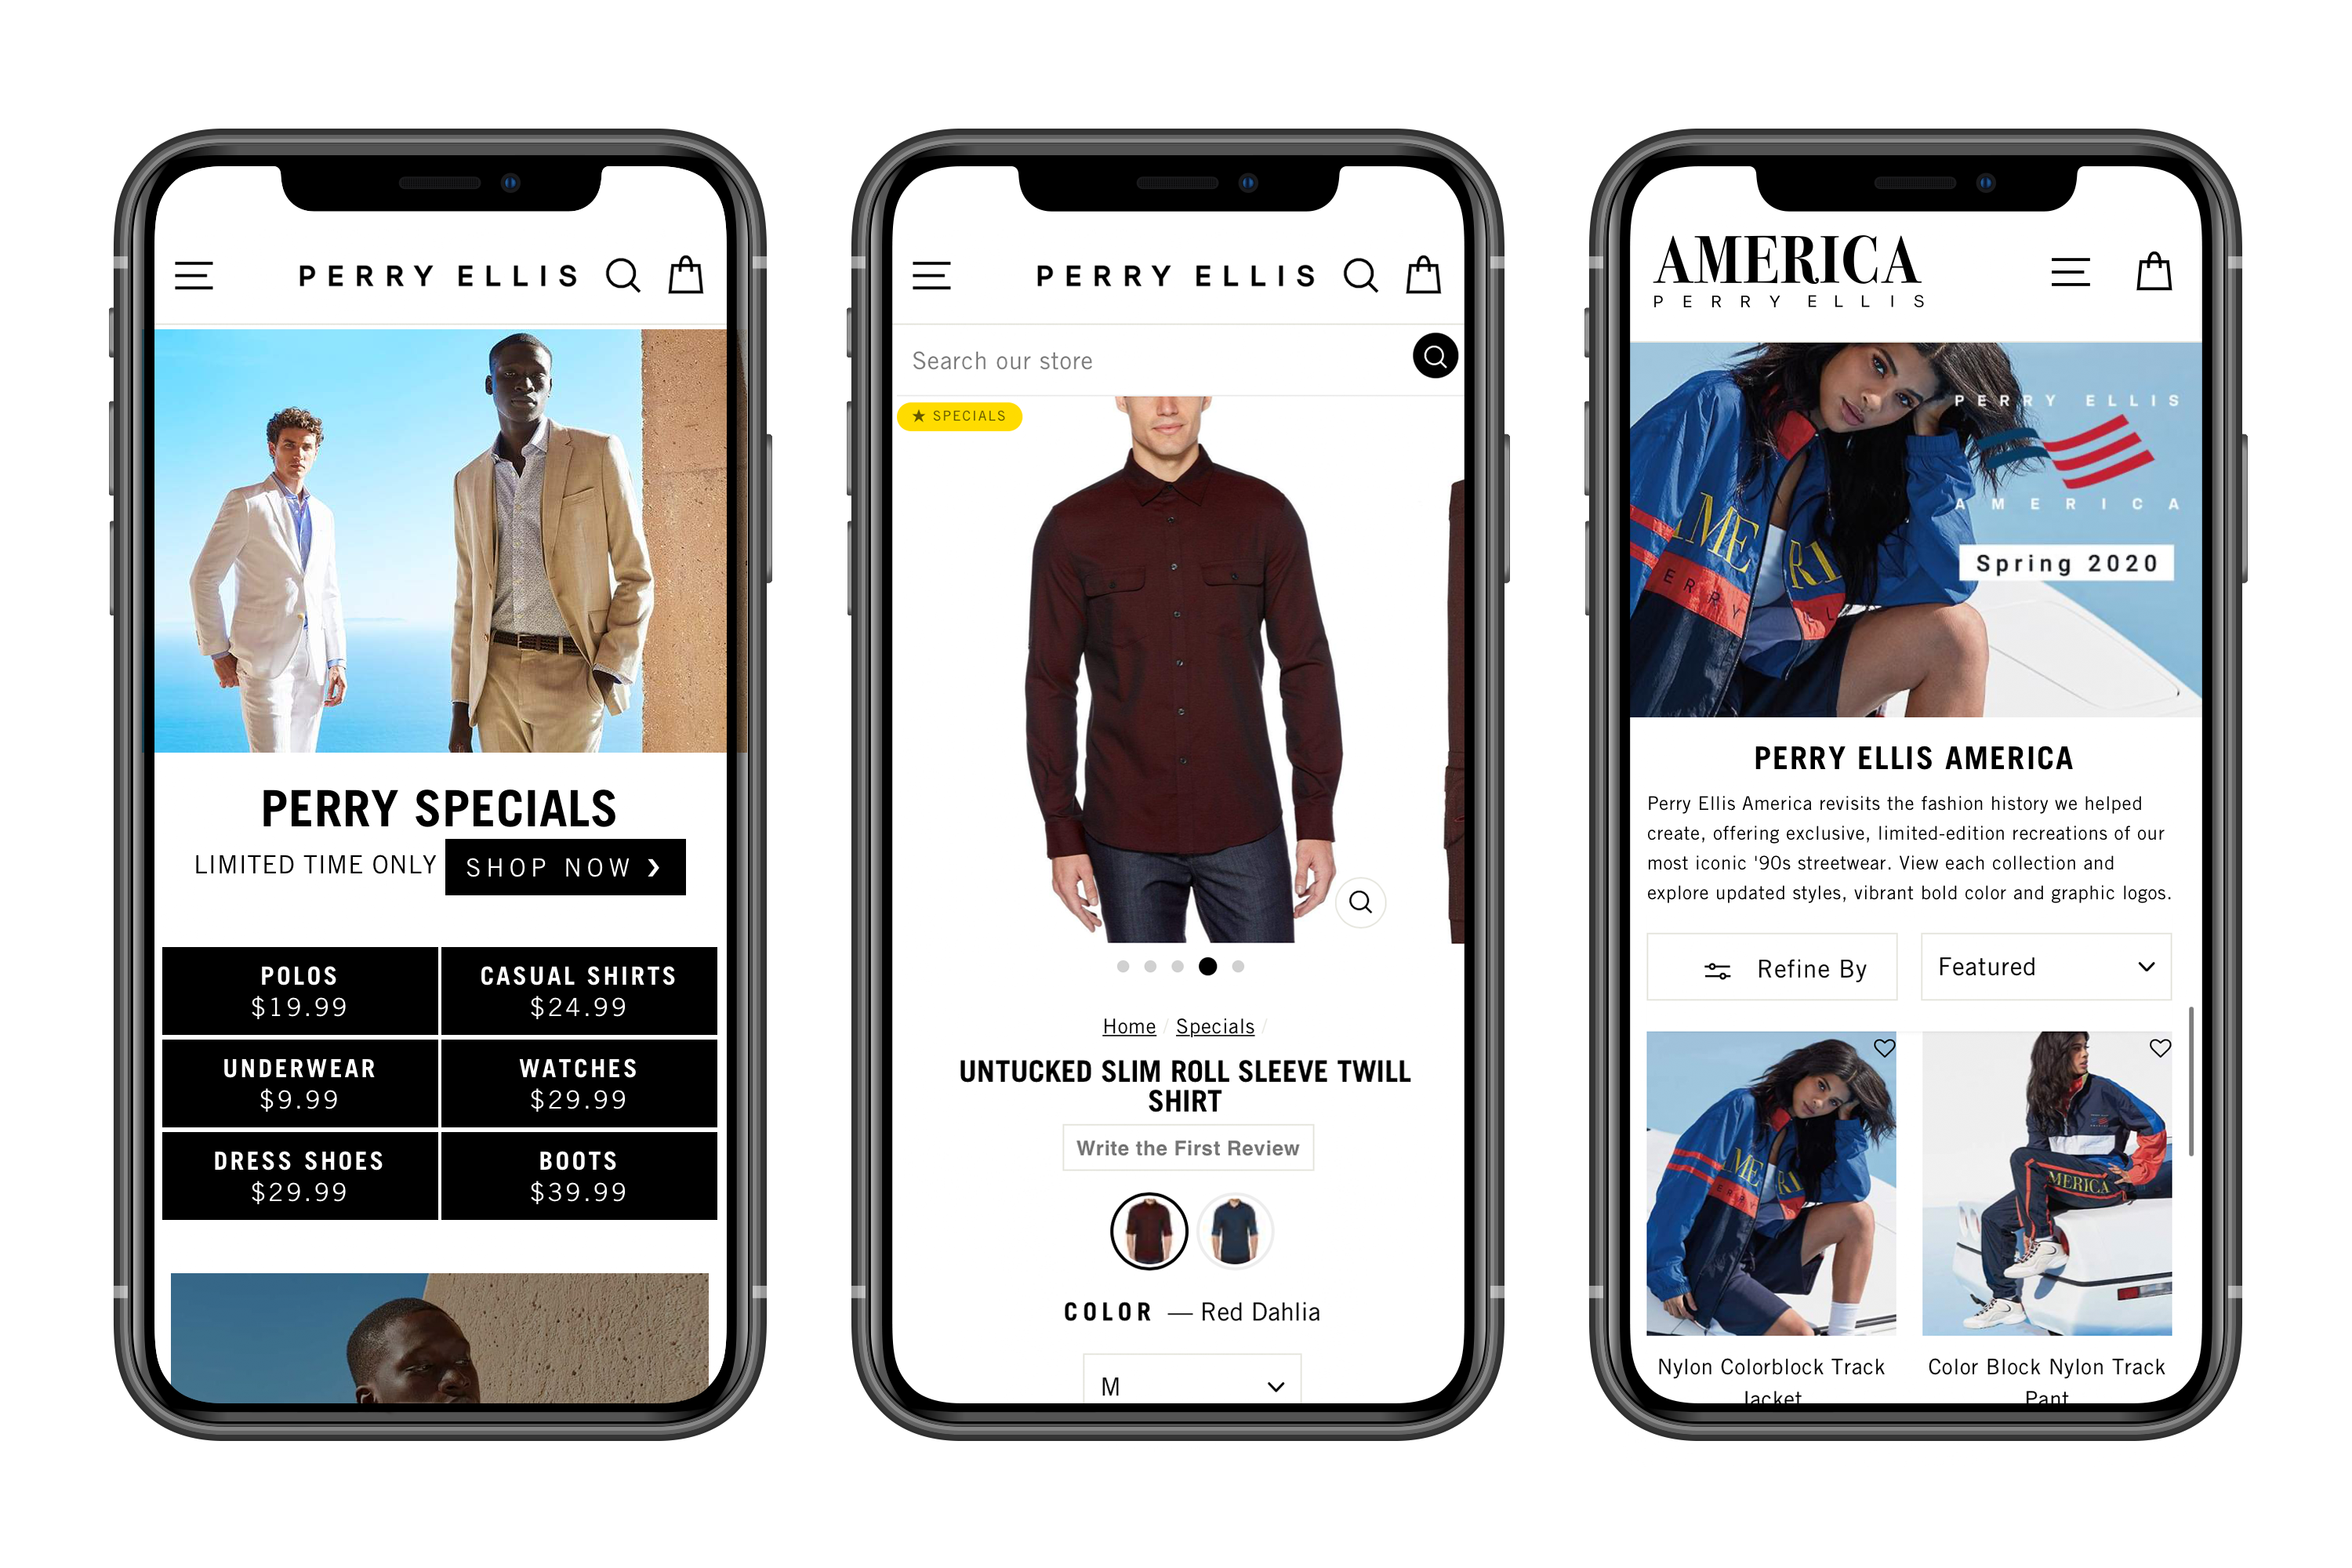 Perry Ellis website on mobile devices